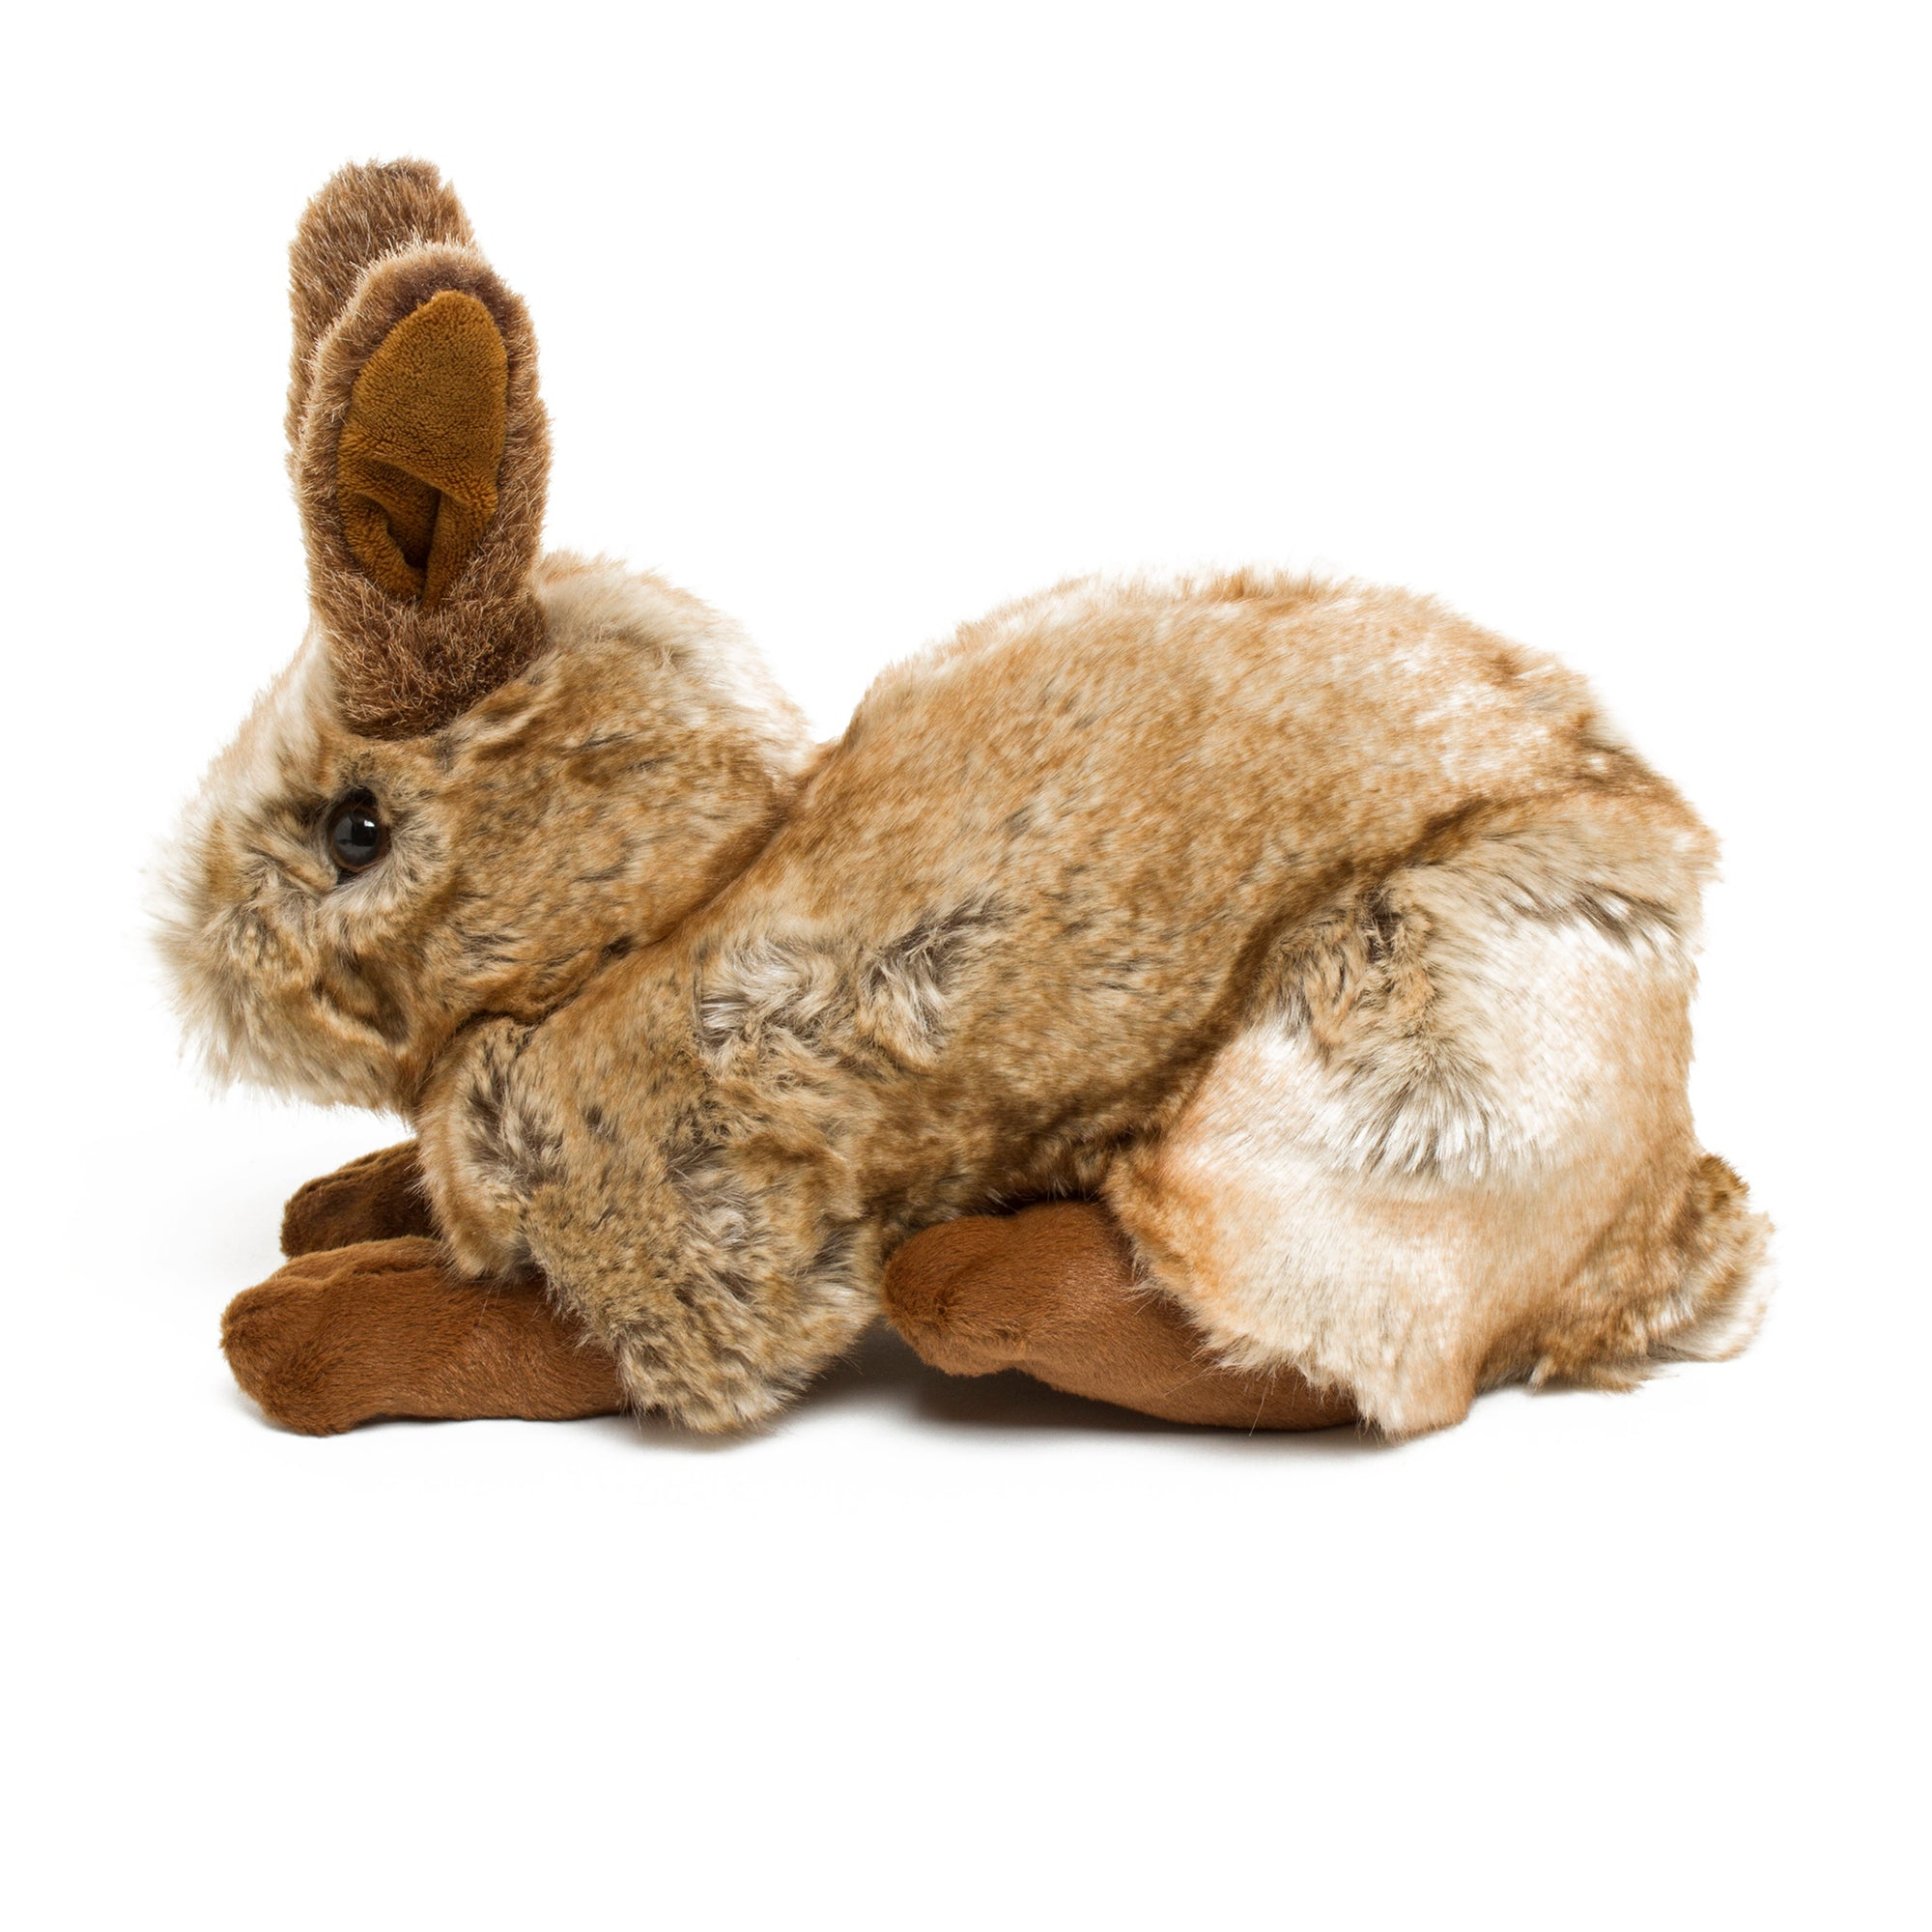 Plush Bunny Inspired by A Hare in the Forest by Hans Hoffmann  | Getty Store